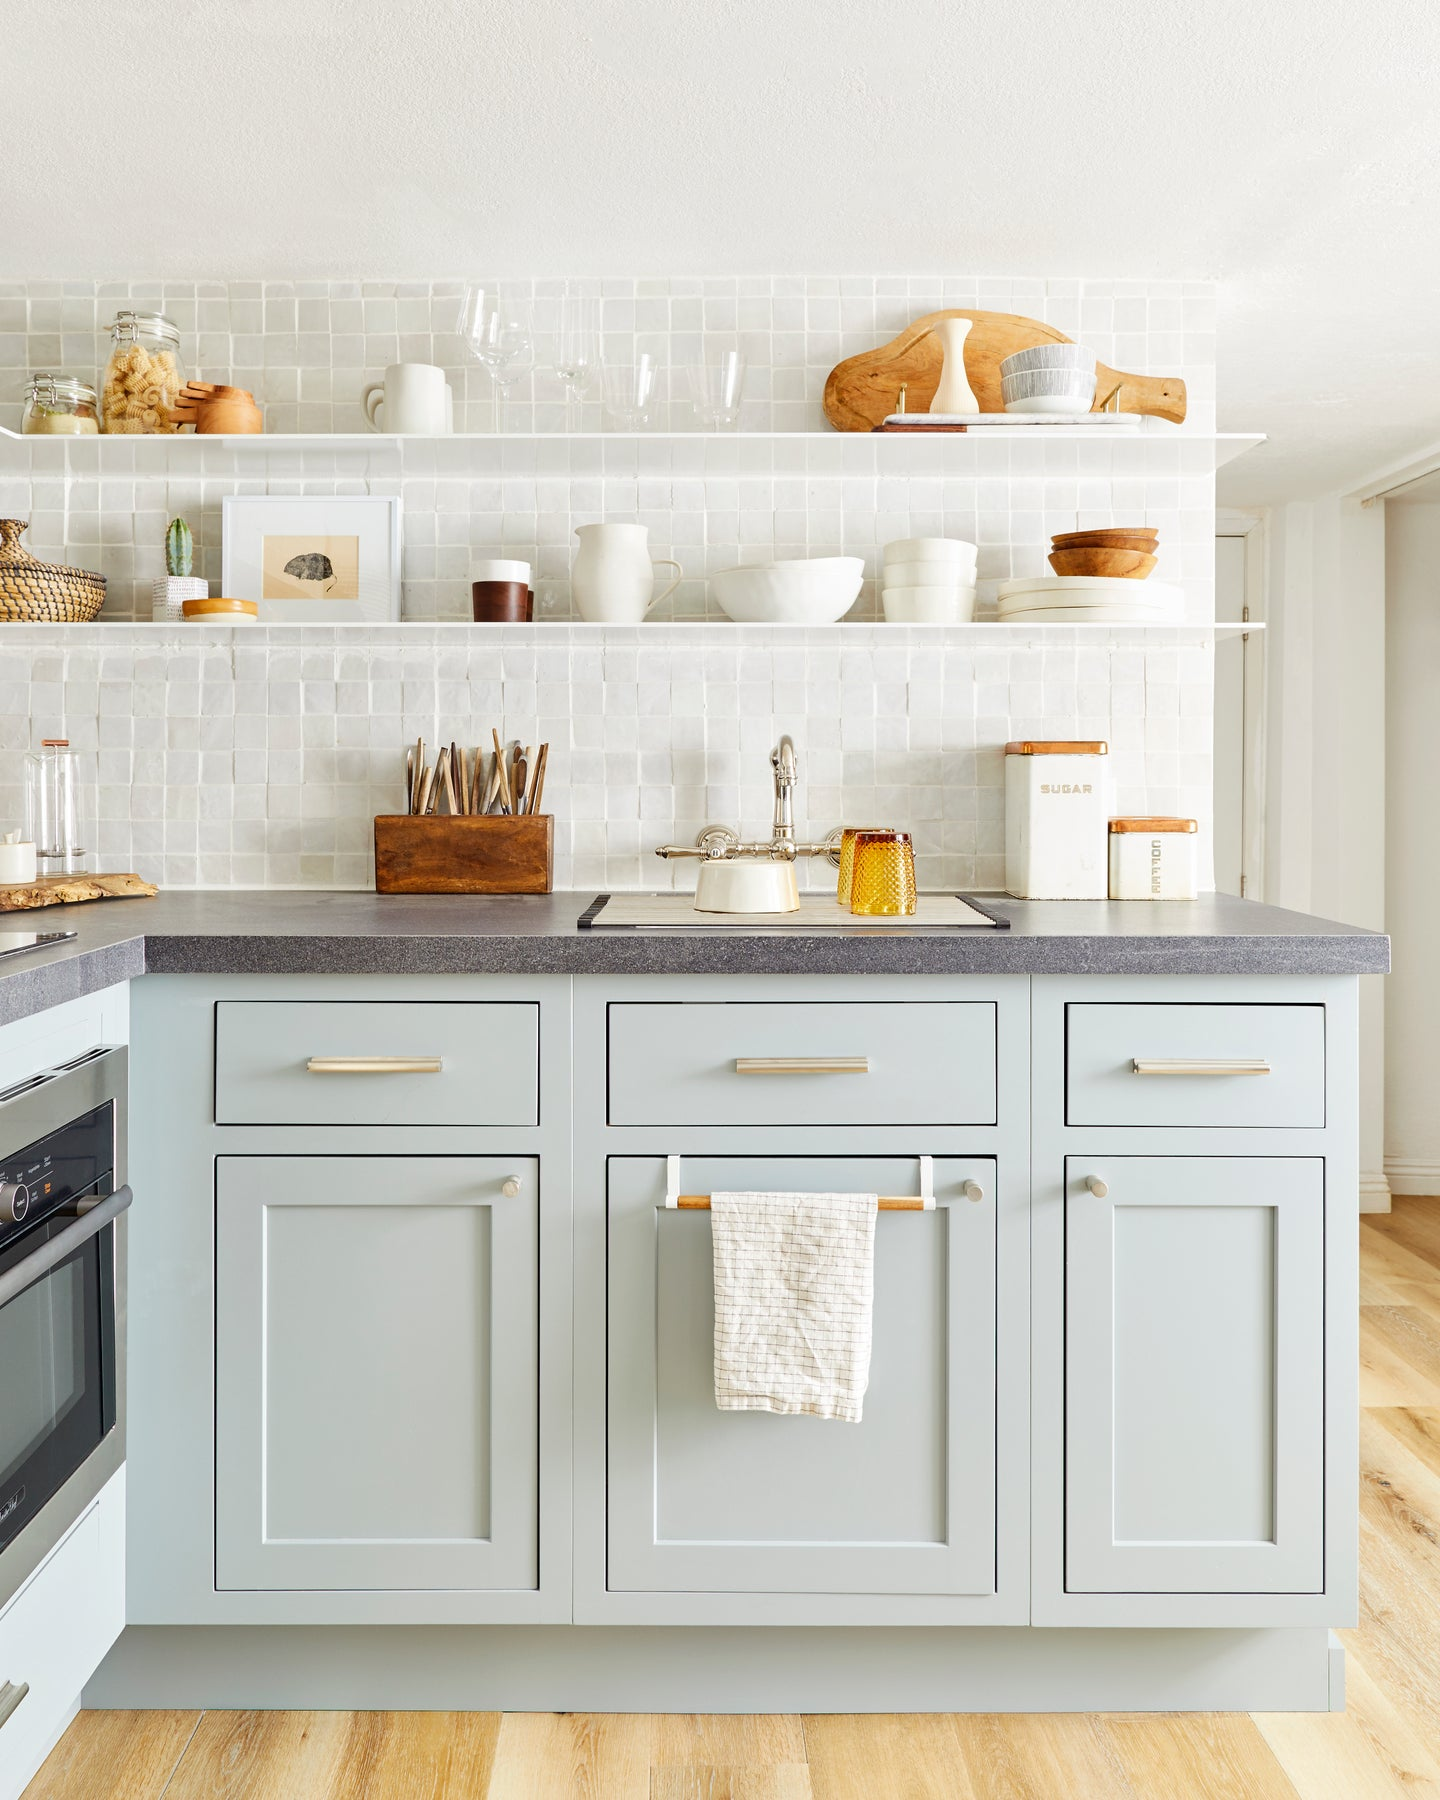 Kitchen with open shelving and mint cabinets